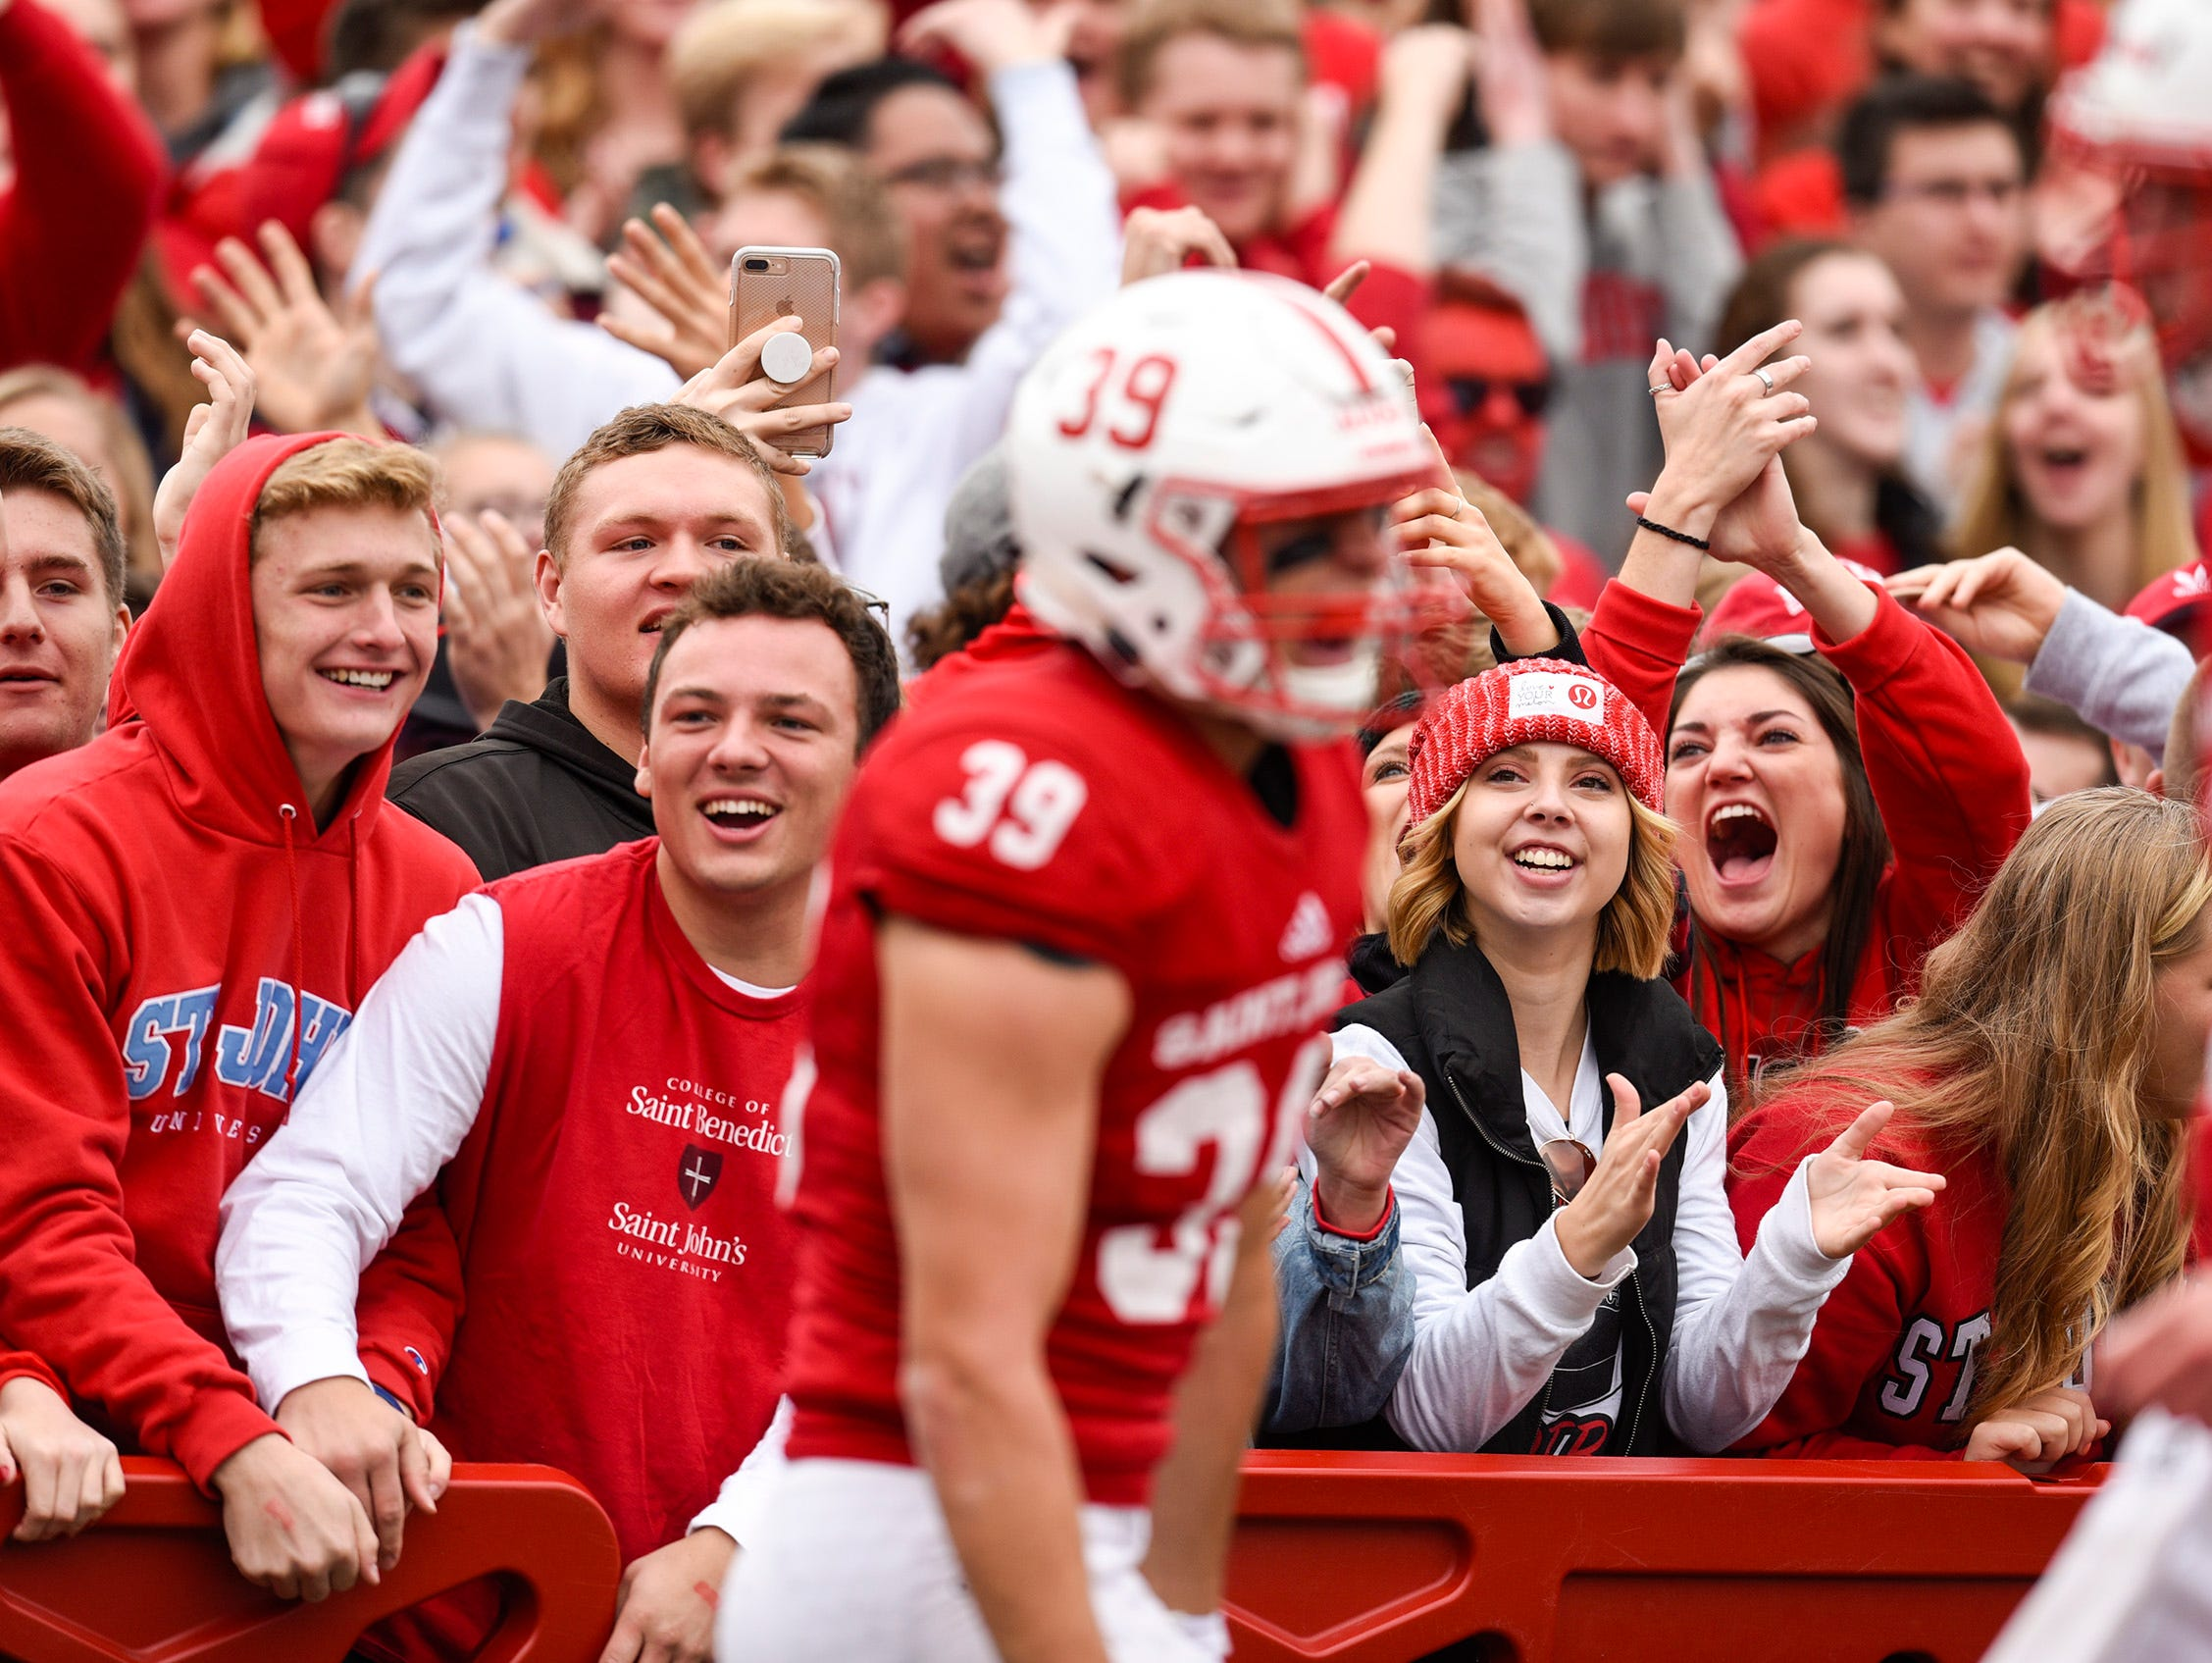 St. John's fans celebrate a touchdown against St. Thomas during the first half Saturday, Oct. 13, in Collegeville.